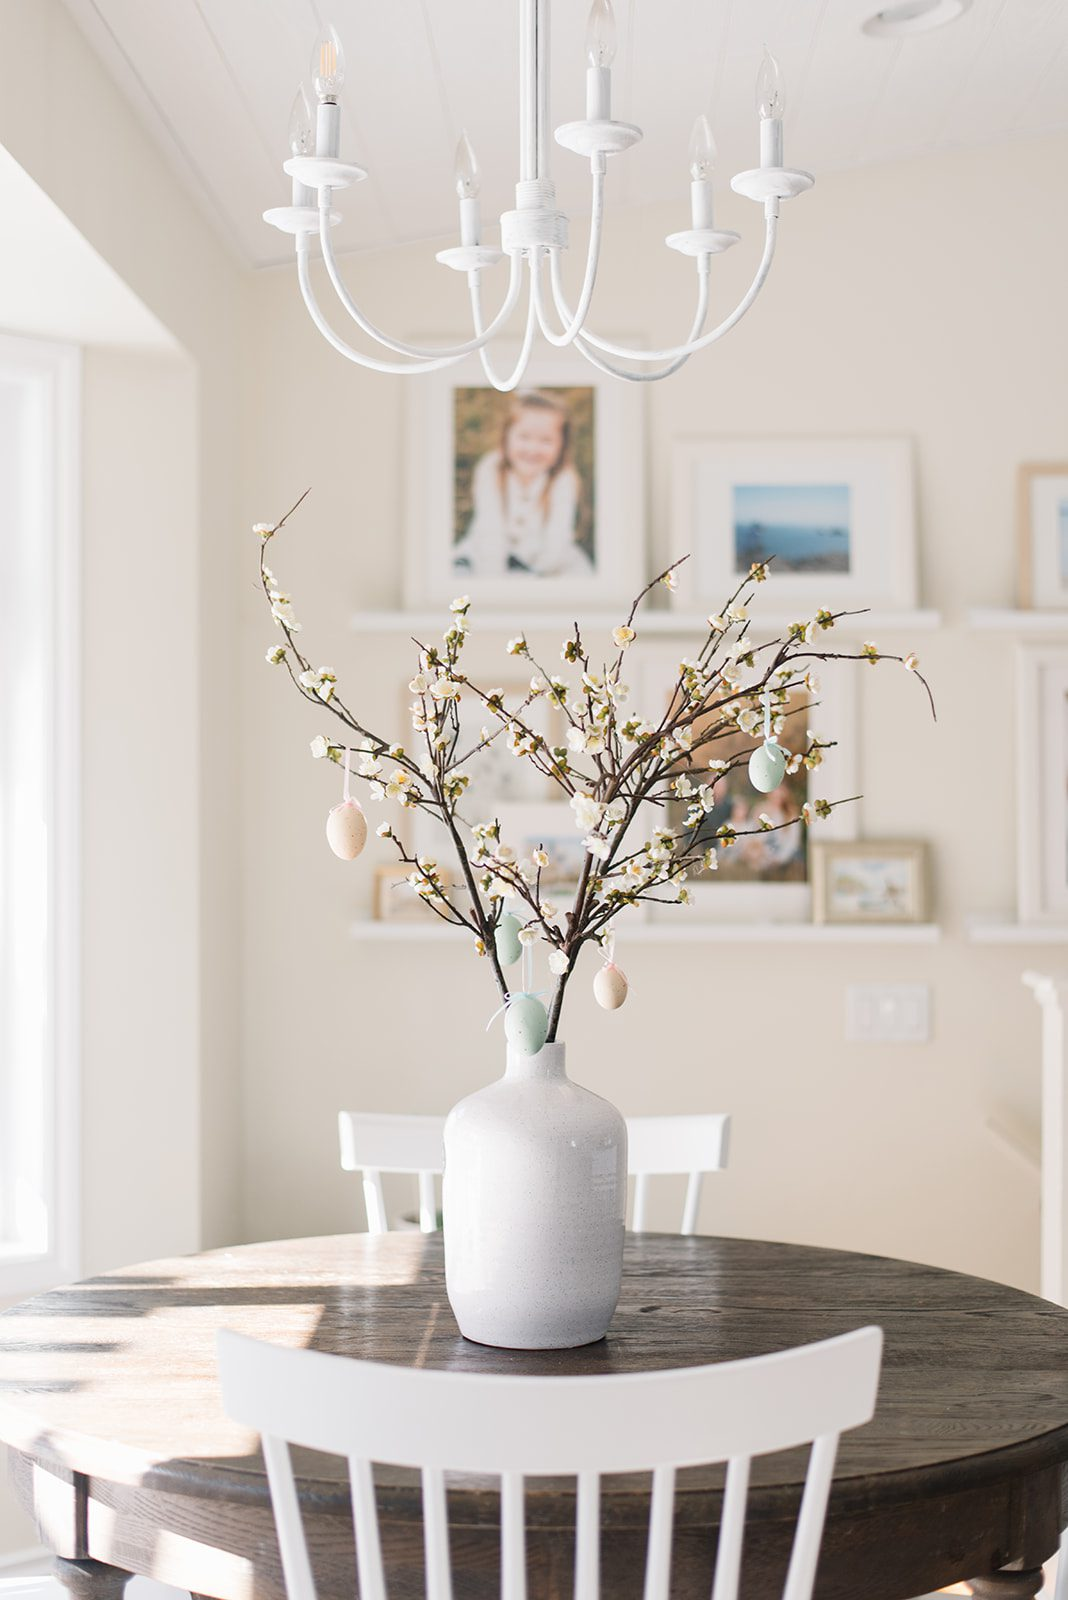 A vase of pussy willows with Easter eggs hung on the branches